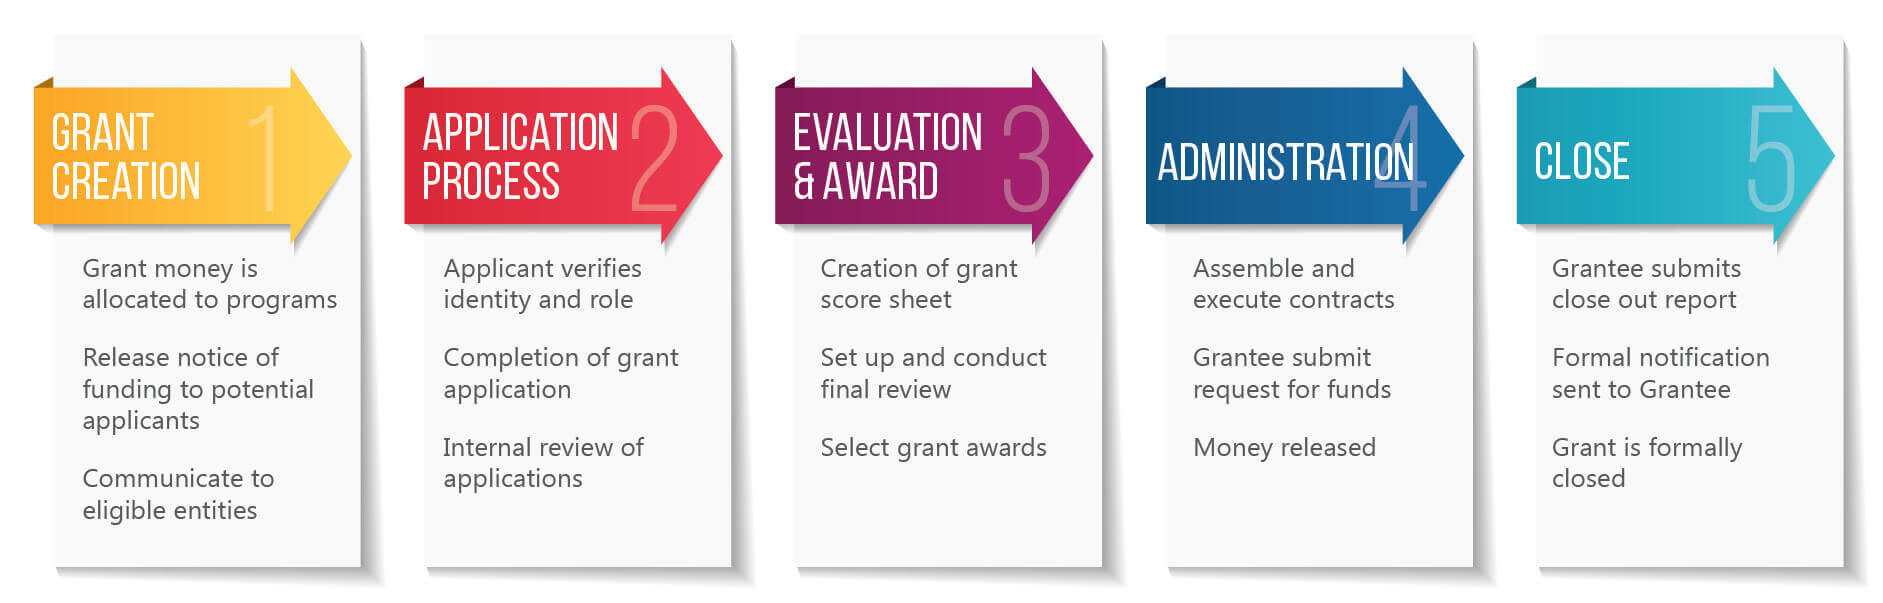 Lifecycle of grantmaking: 1) Grant Creation, 2) Application Process, 3) Evaluation & Award, 4) Administration, 5) Close